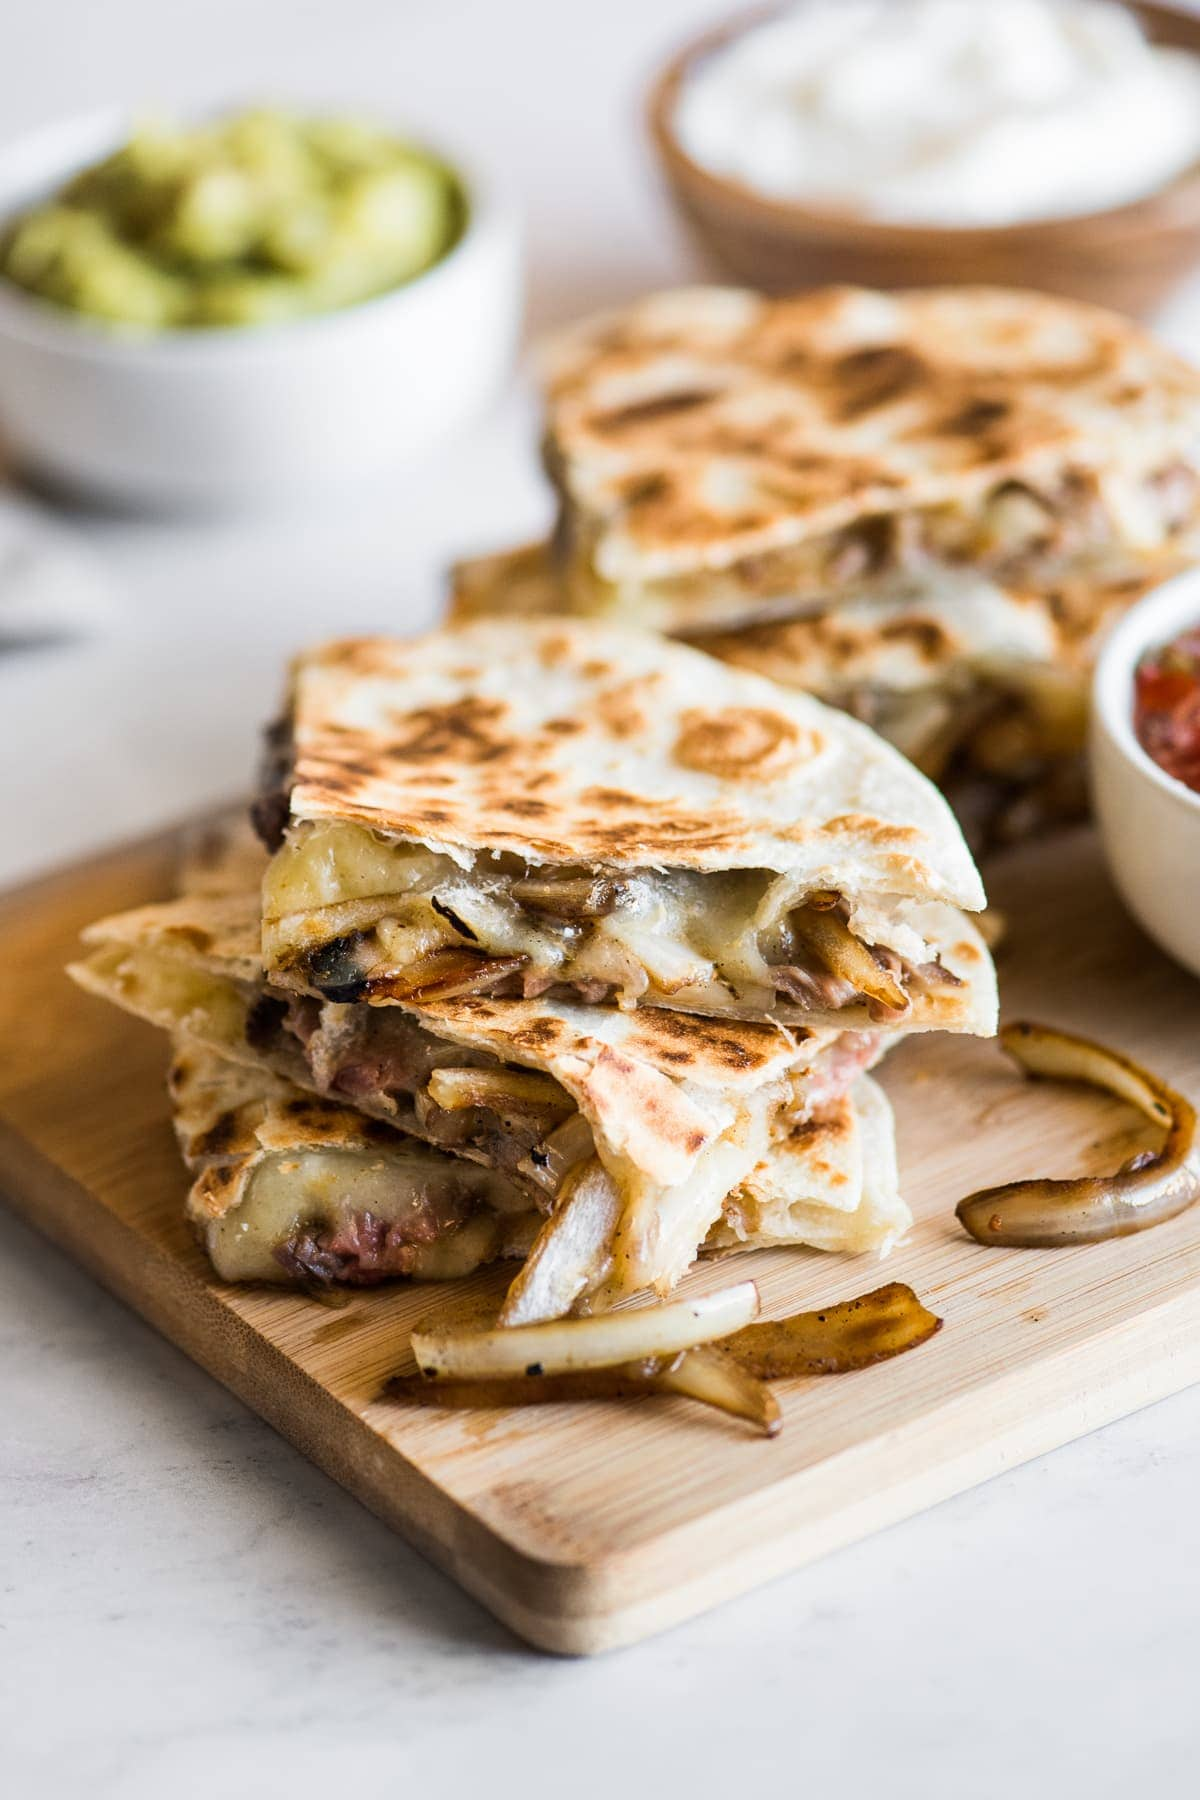 Steak quesadillas with melted cheese and sauteed onions.